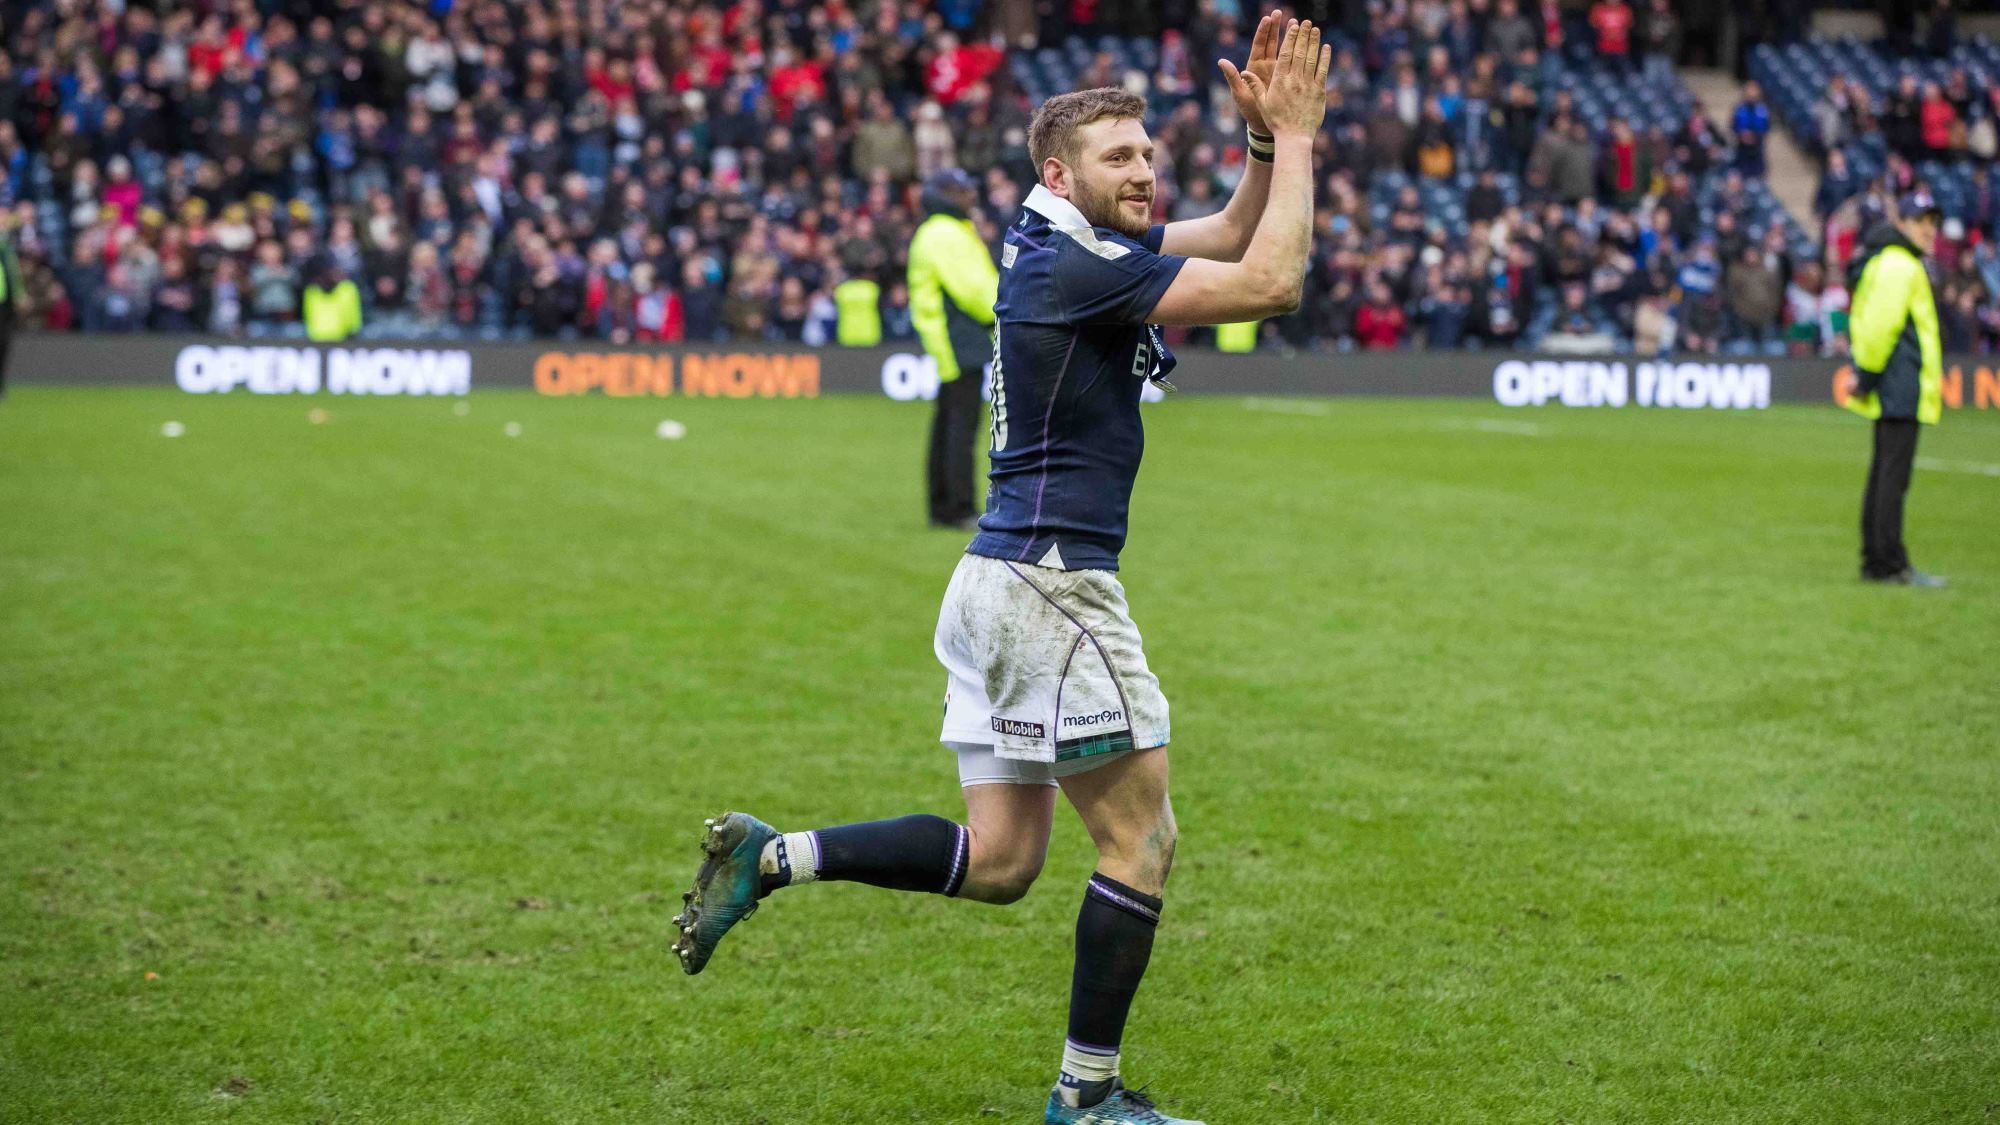 Scots secure famous victory over Australia in Sydney